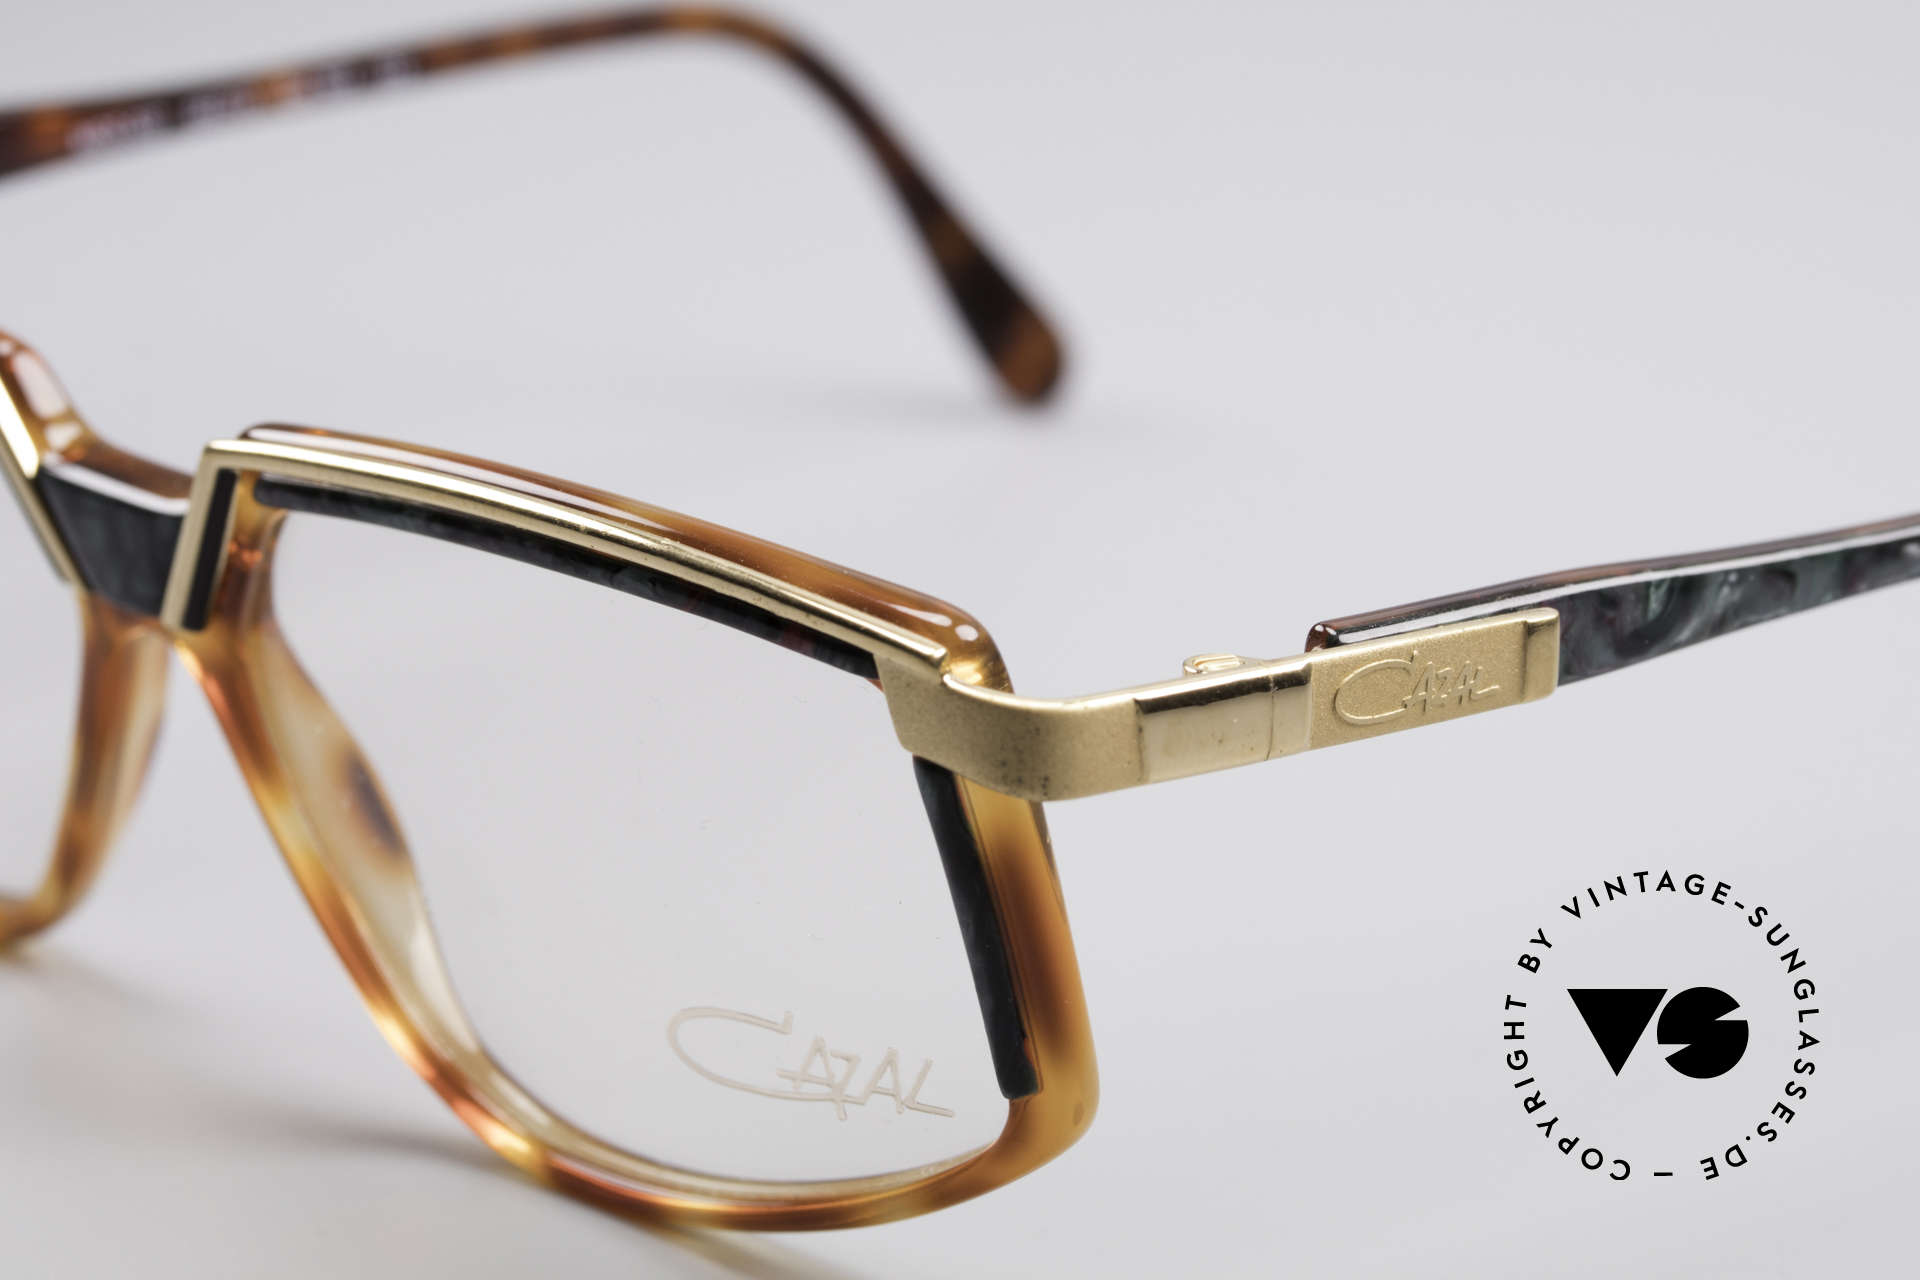 Cazal 337 Vintage Frame No Retro Cazal, fancy material combination (metal plastic), vintage, Made for Men and Women